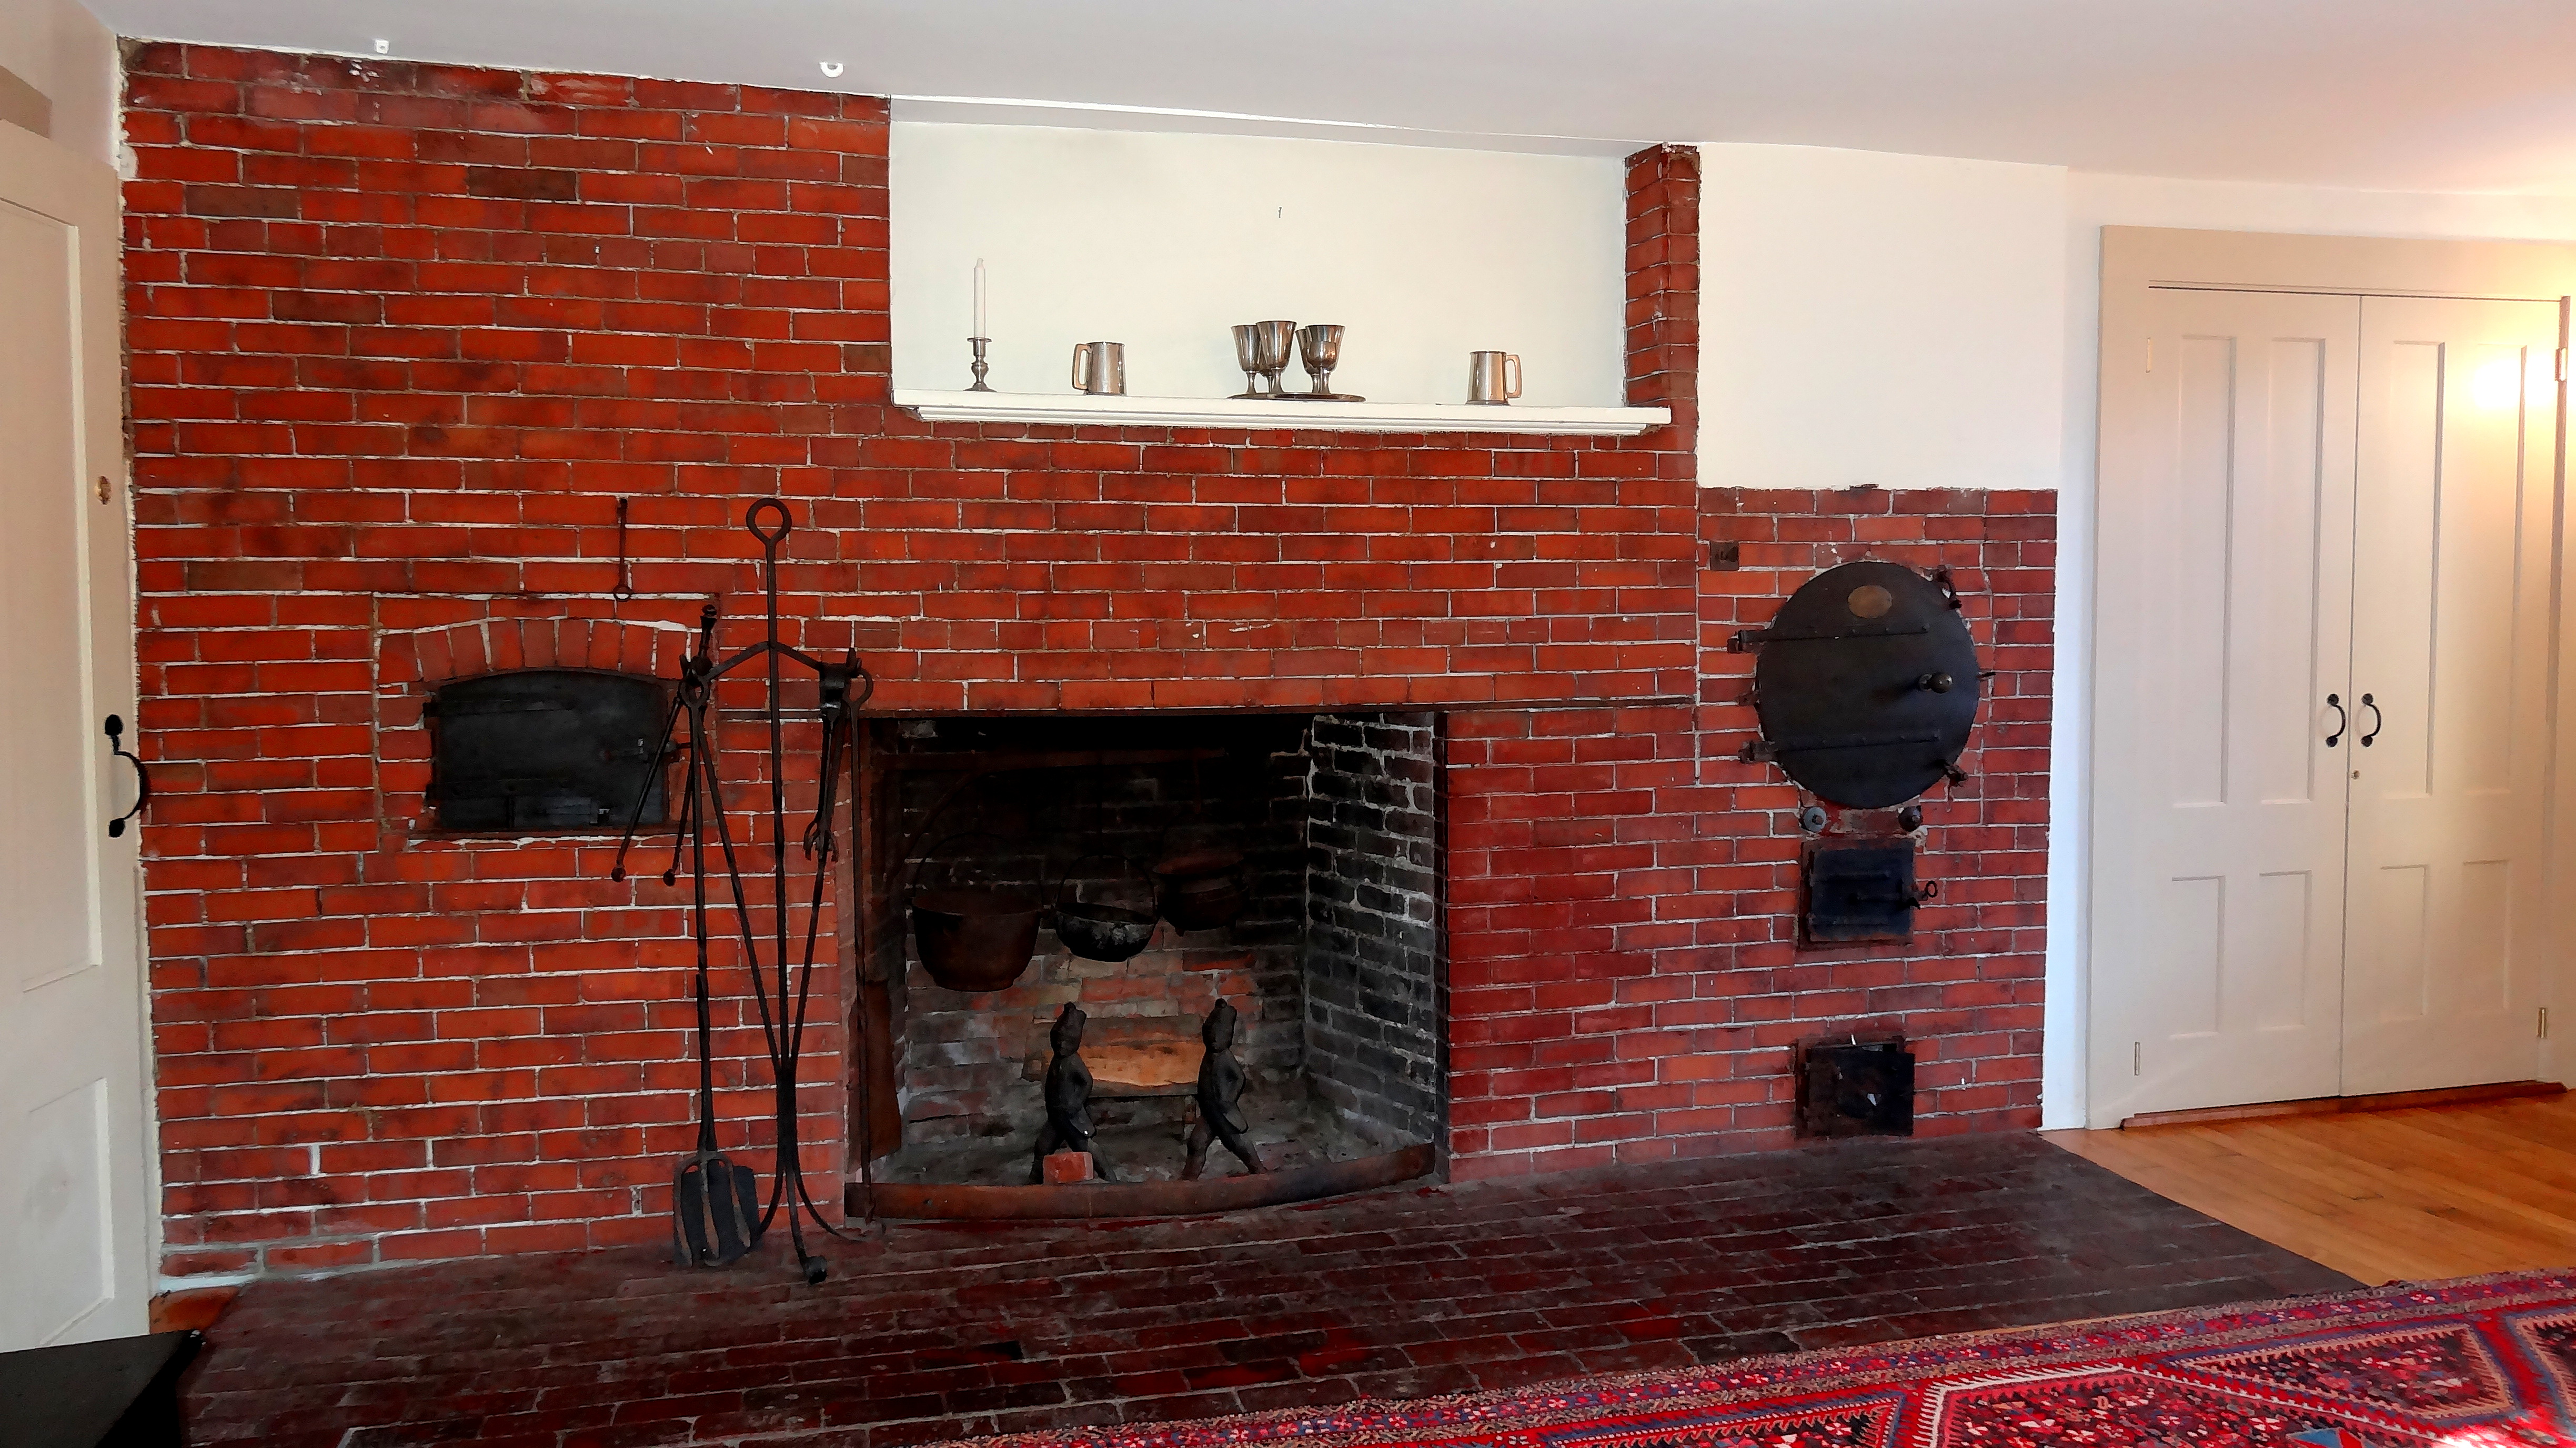 Rumford roasters streetsofsalem for Rumford fireplaces